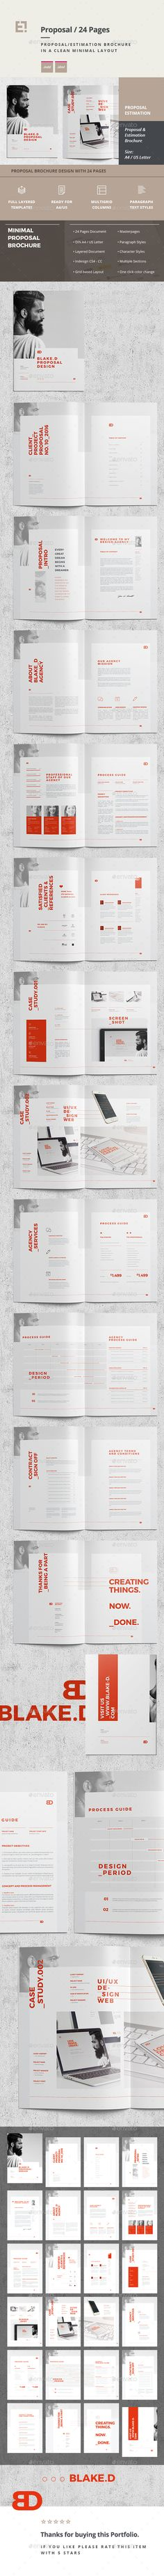 #Proposal - Proposals & #Invoices #Stationery Download here: https://graphicriver.net/item/proposal/19178760?ref=alena994